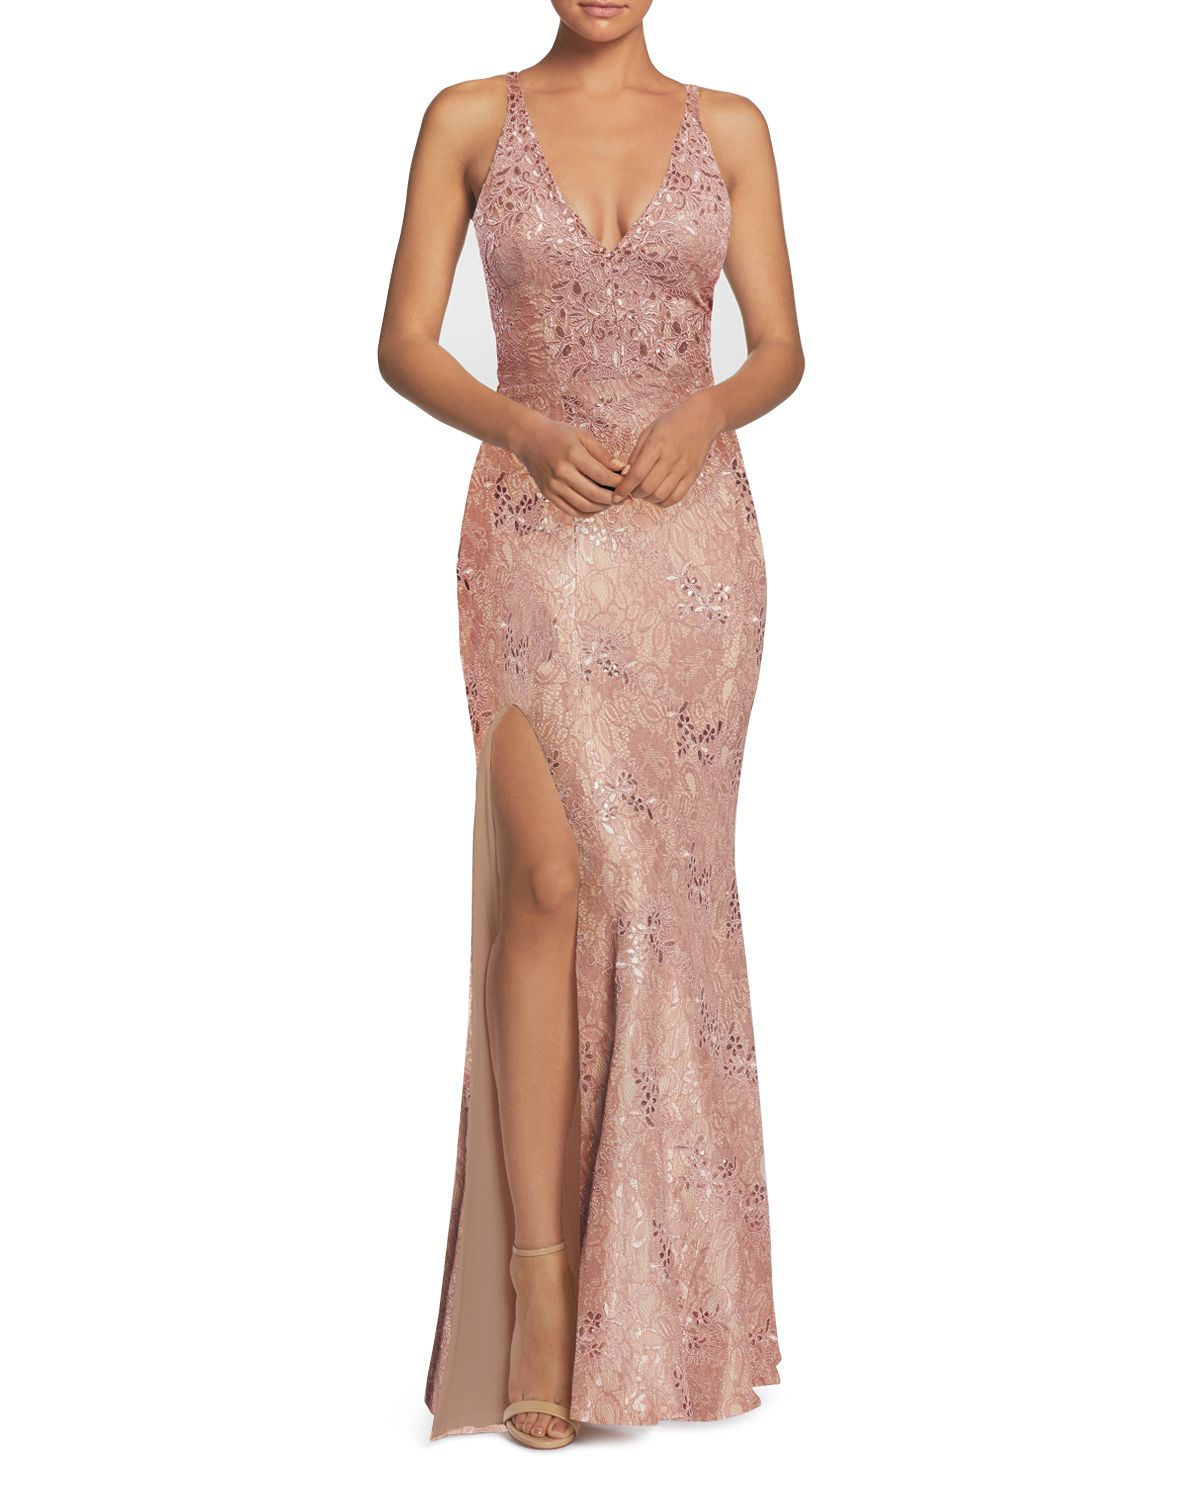 Lace Mermaid Gown by Dress The Population